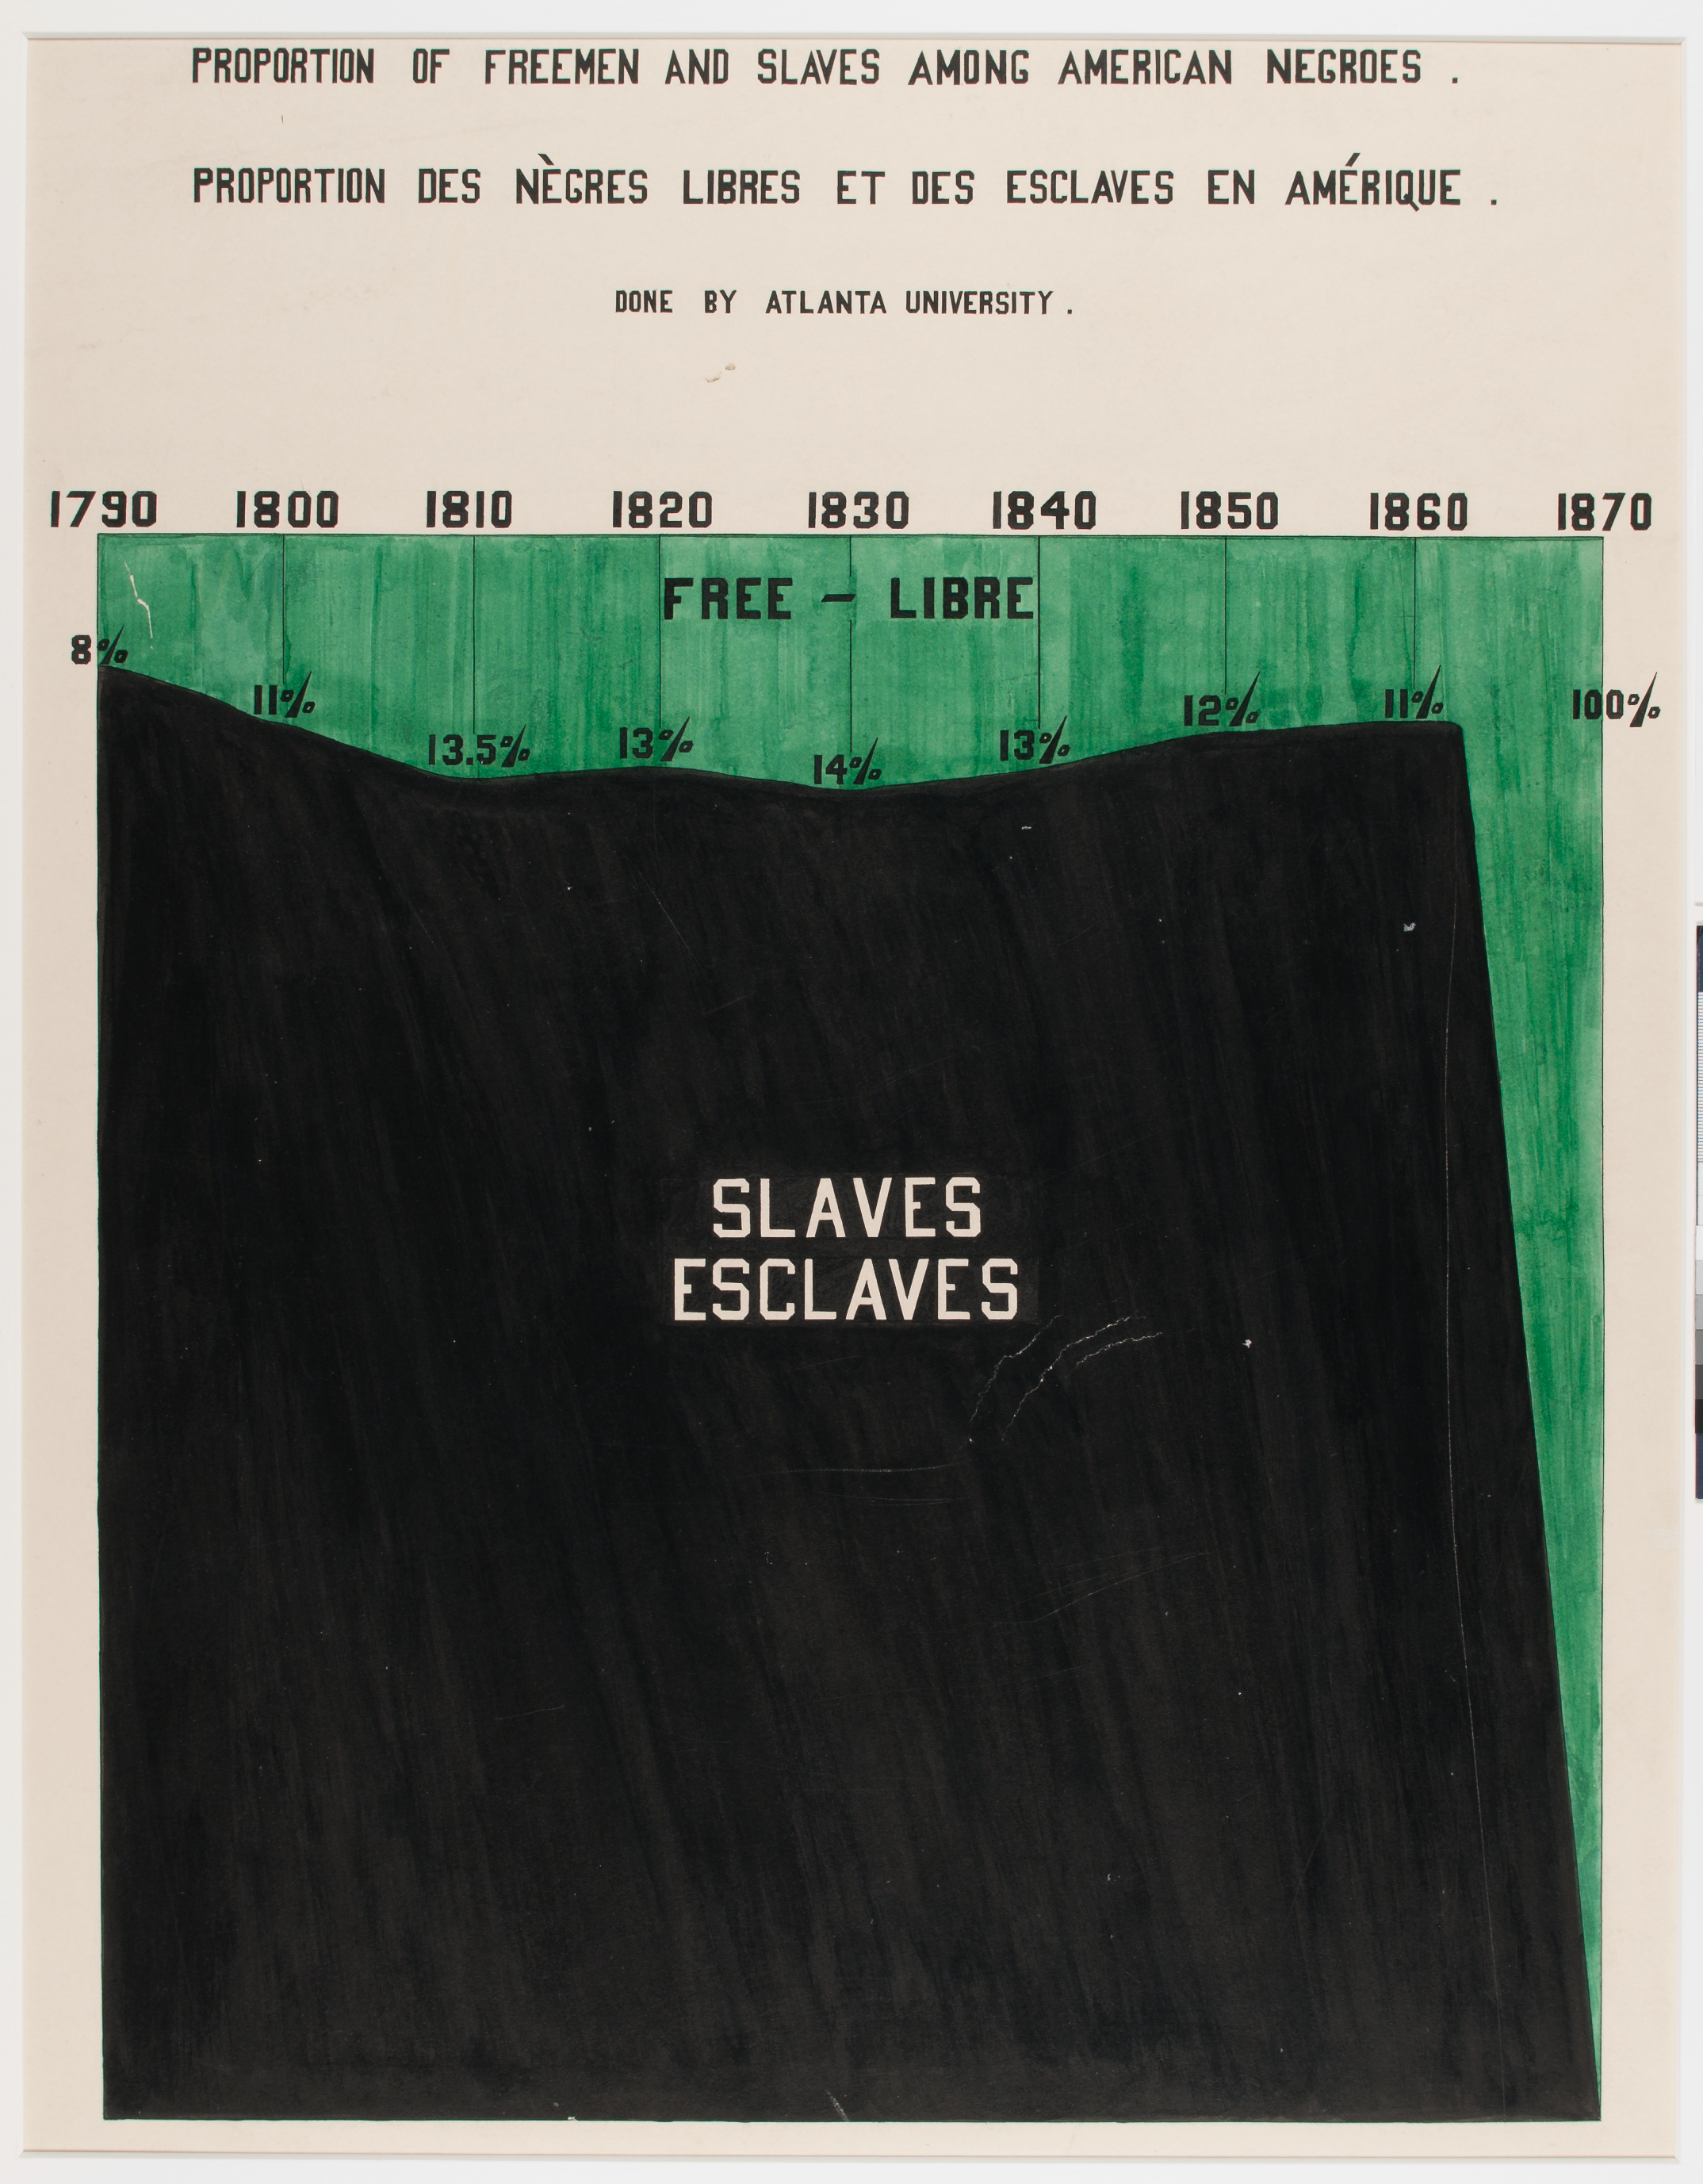 Proportion of Freemen and Slaves Among American Negroes - Done by Atlanta University - W.E.B. DuBois